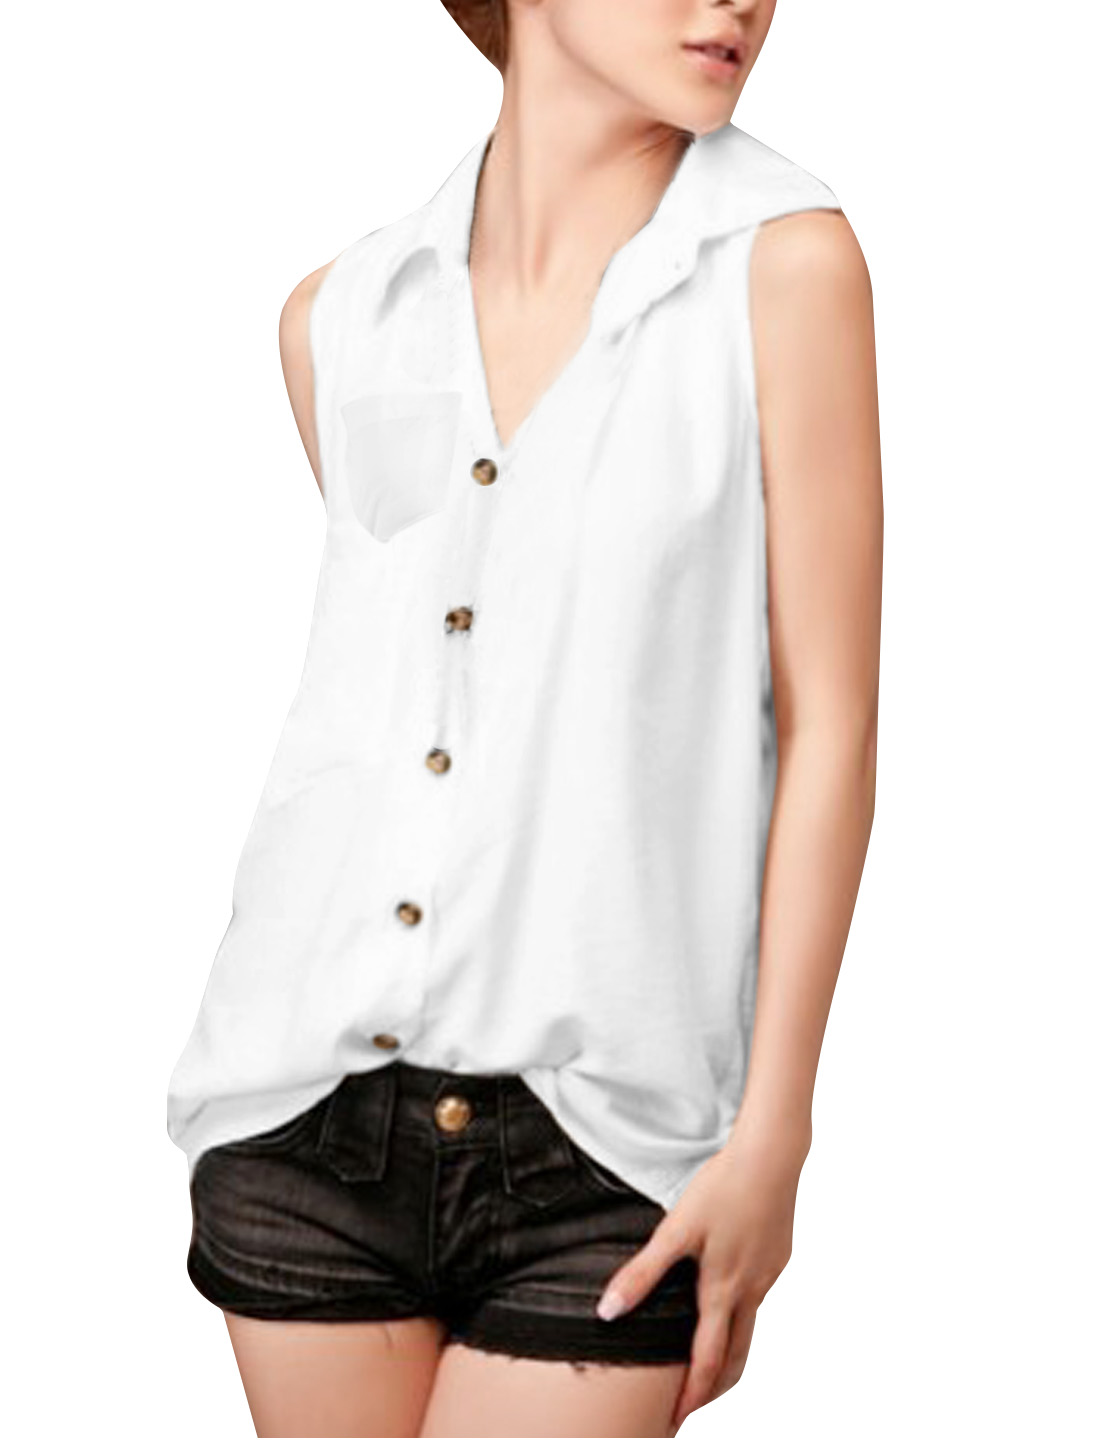 Woman New Fashion Point Collar White Blouse w Slim Braided String Belt M